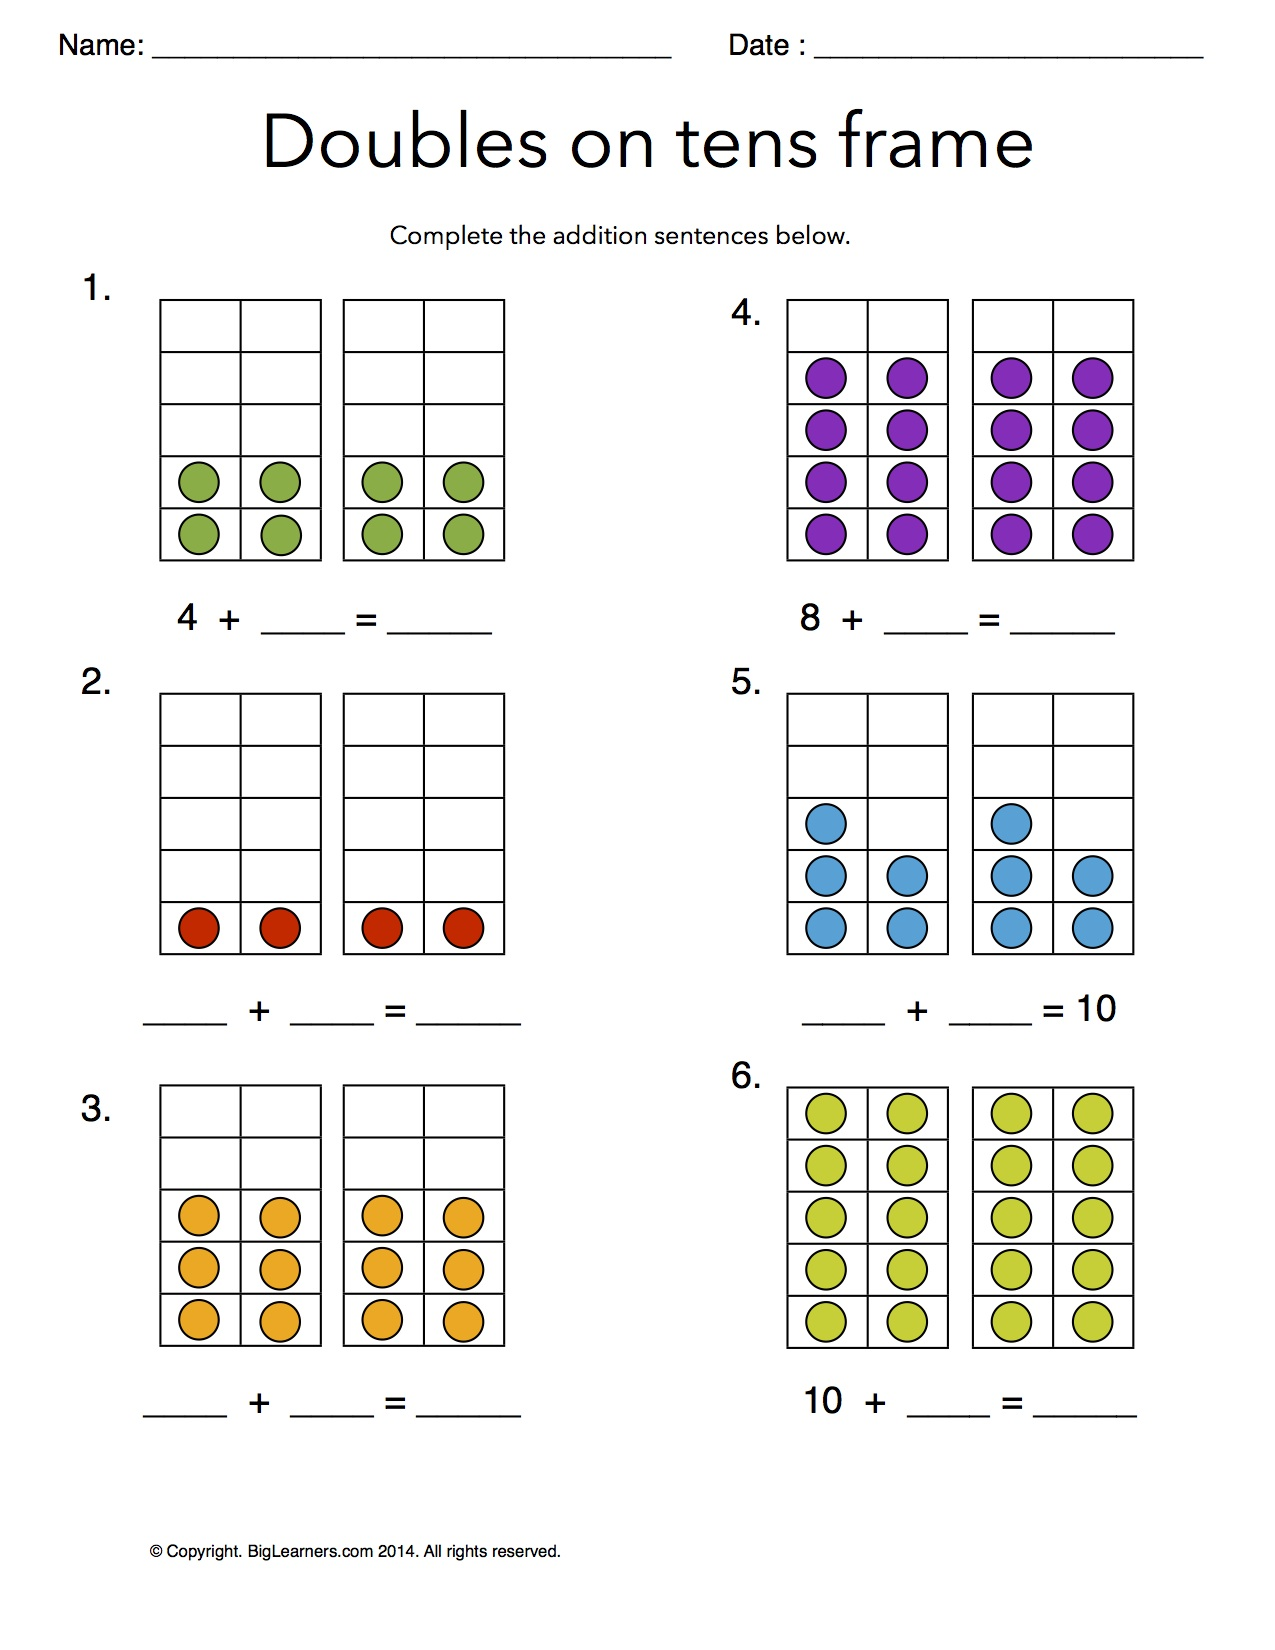 grade   free common core math worksheets  biglearners preview image for worksheet with title doubles on tens frames